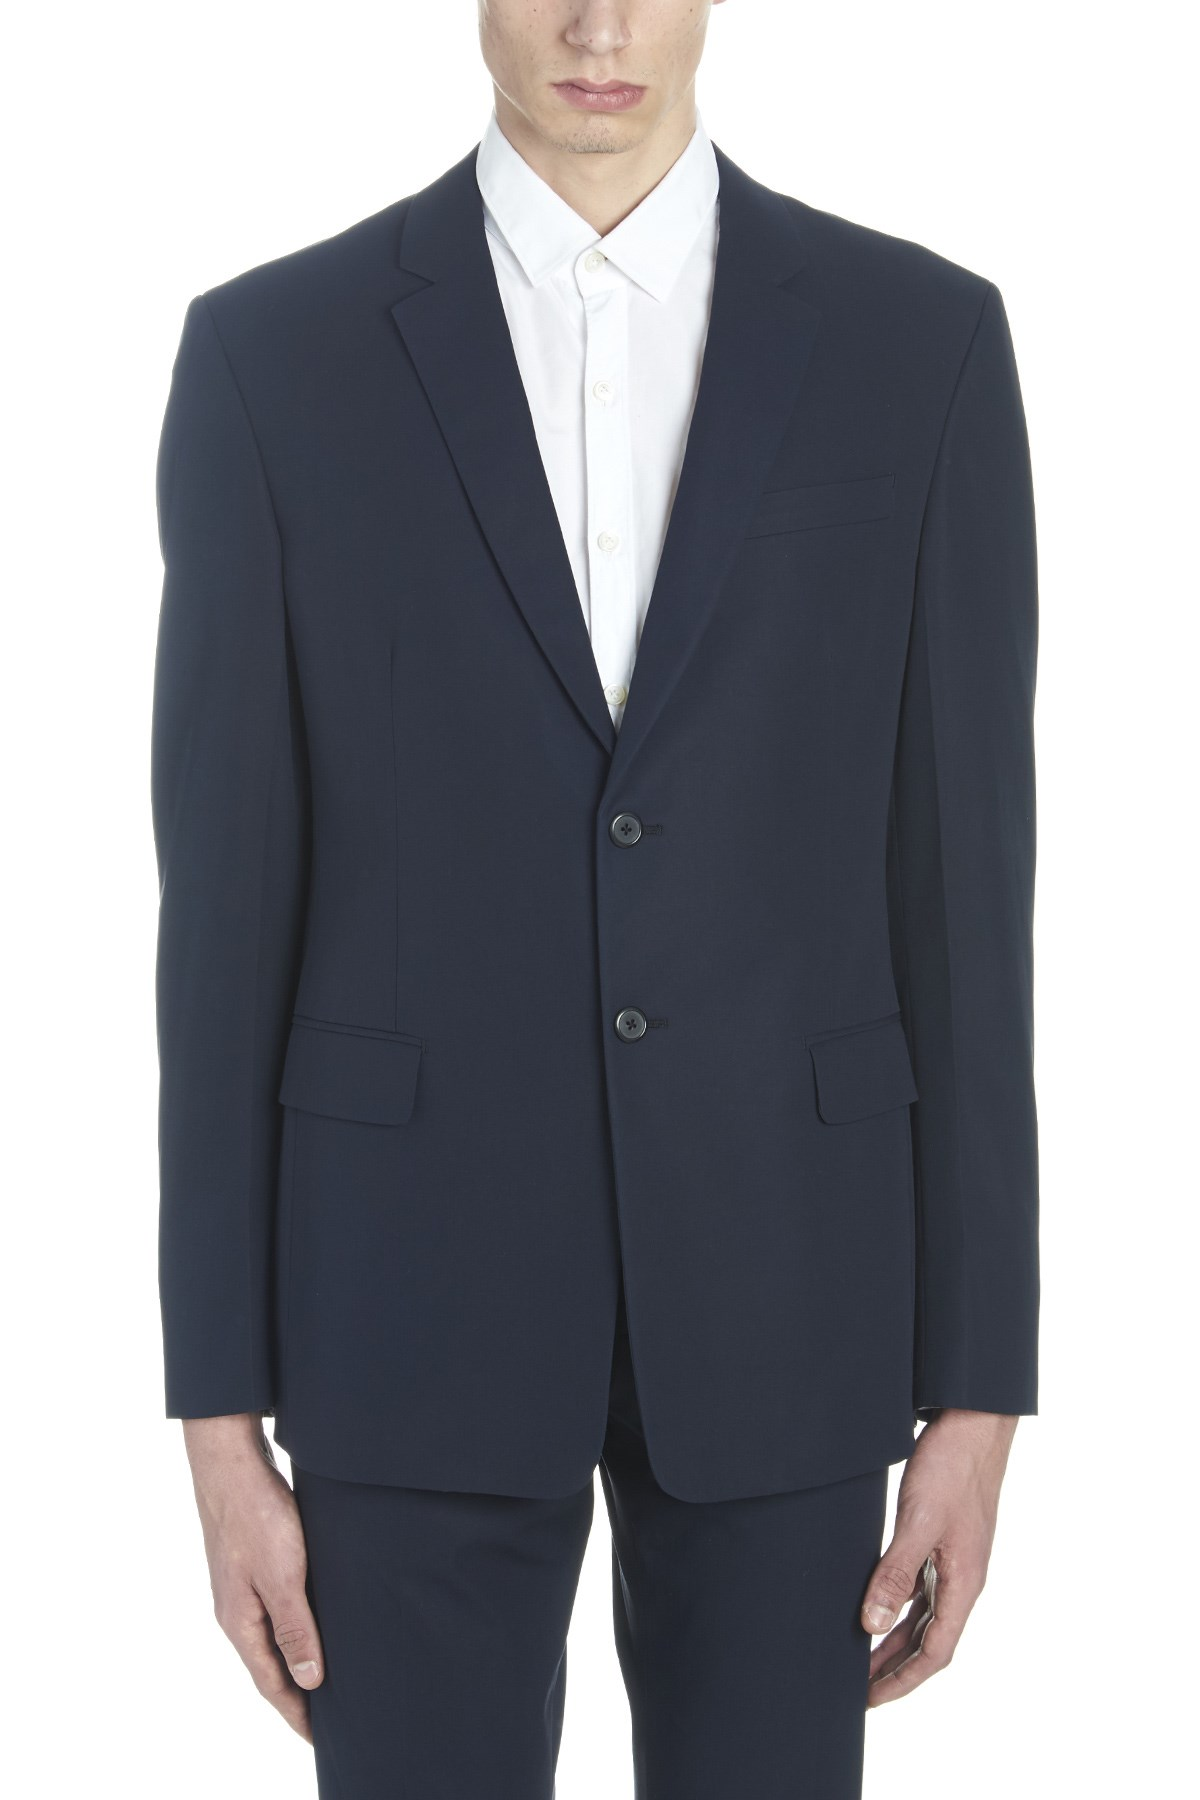 37e83cb7905 prada onebreasted suits available on julian-fashion.com - 62838